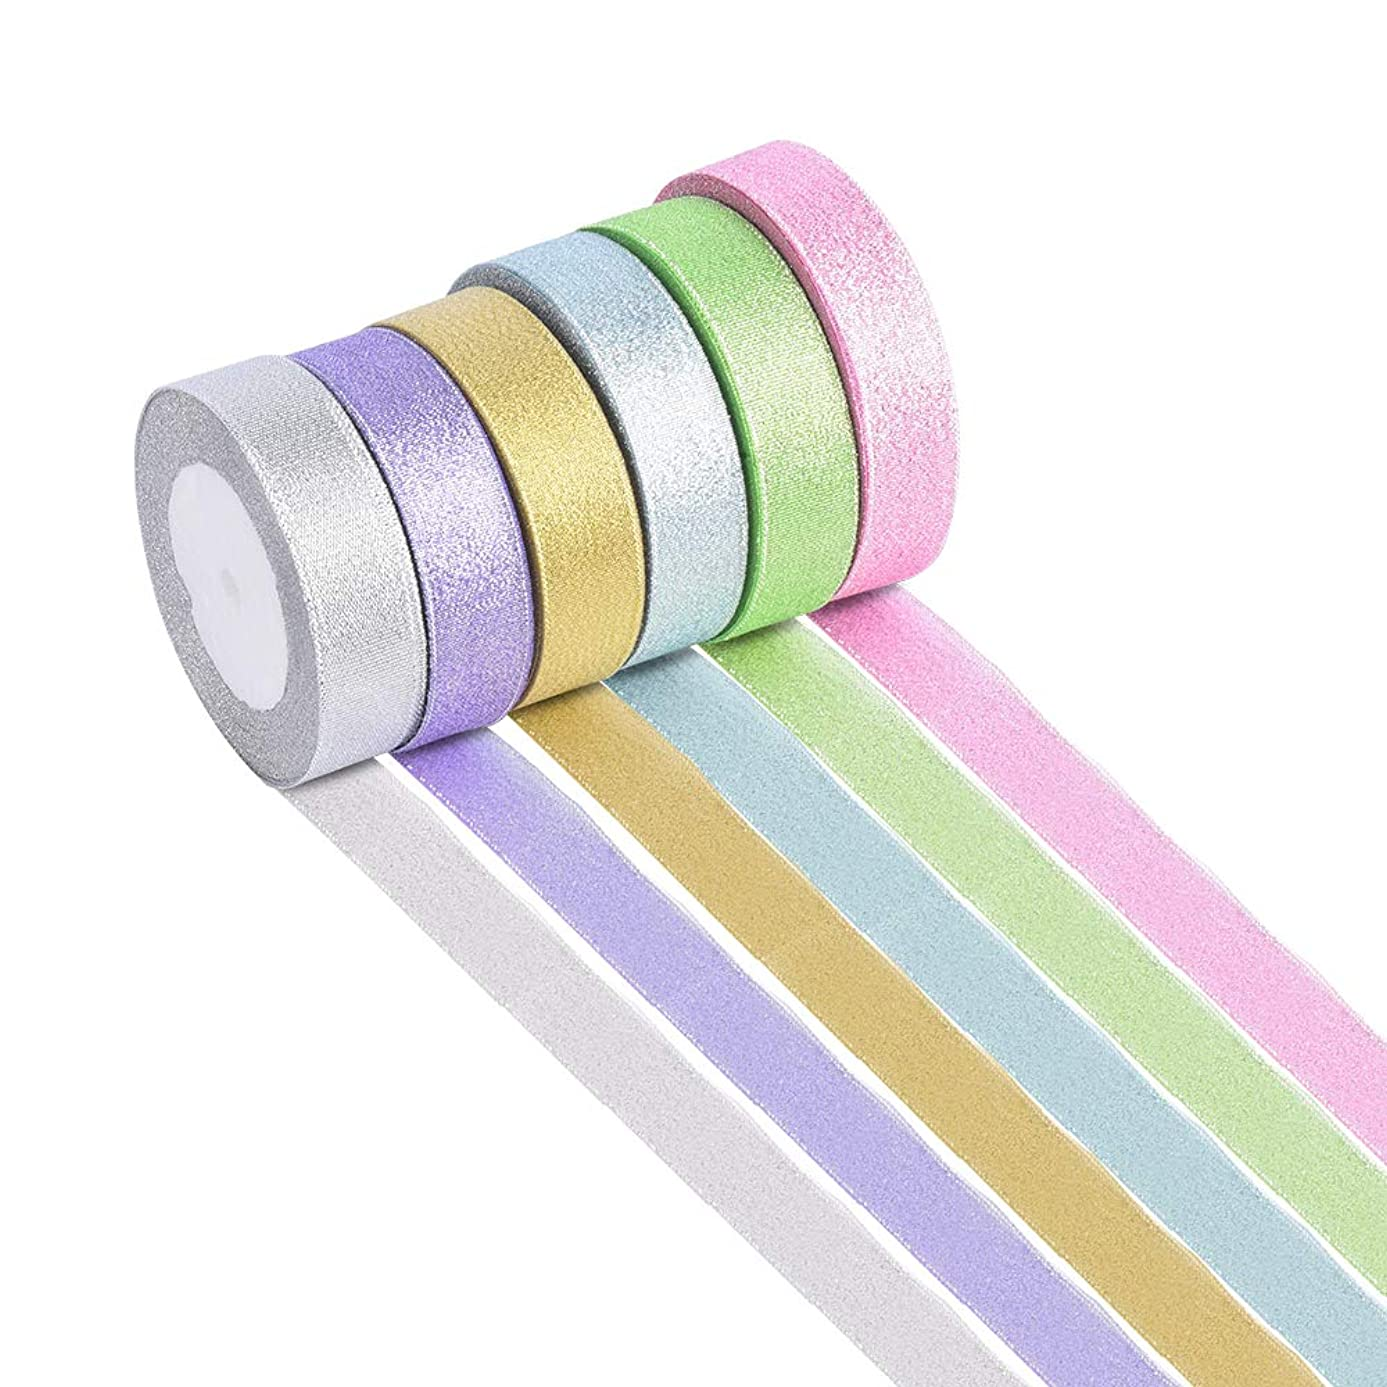 150 Yard 4/5 inch Wide Lace Tule Fabric Ribbon Silk Satin Ribbon Roll 6 Colors for DIY Crafts Arts, Bows Gift Wrapping, Floral Projects, Card Making, Embellish Ribbon for Bows Crafts, Party Wedding